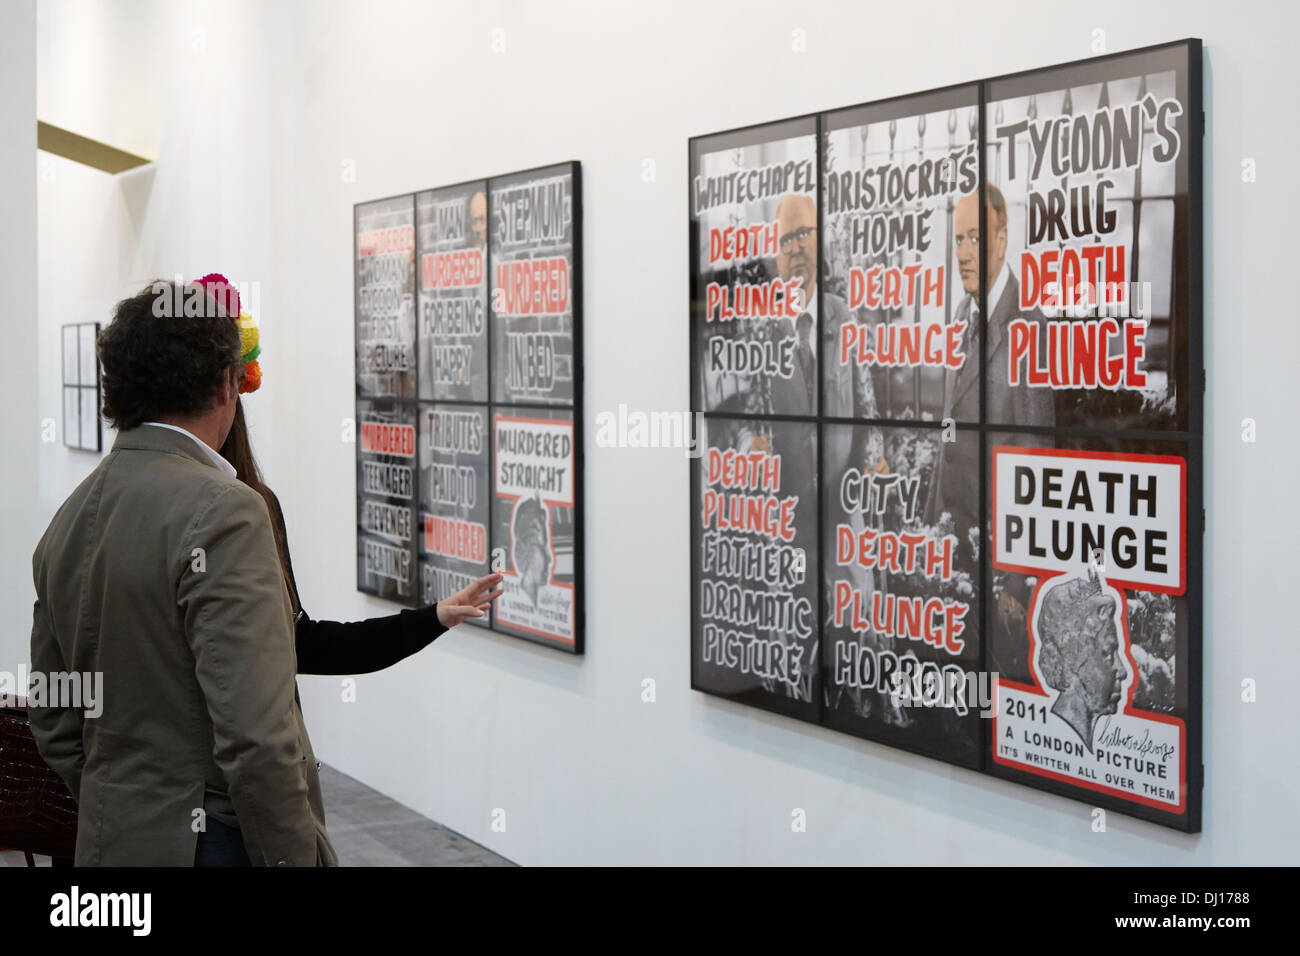 Gilbert & George artwork and visitors during Artissima 2013 art fair in Turin, Italy Stock Photo